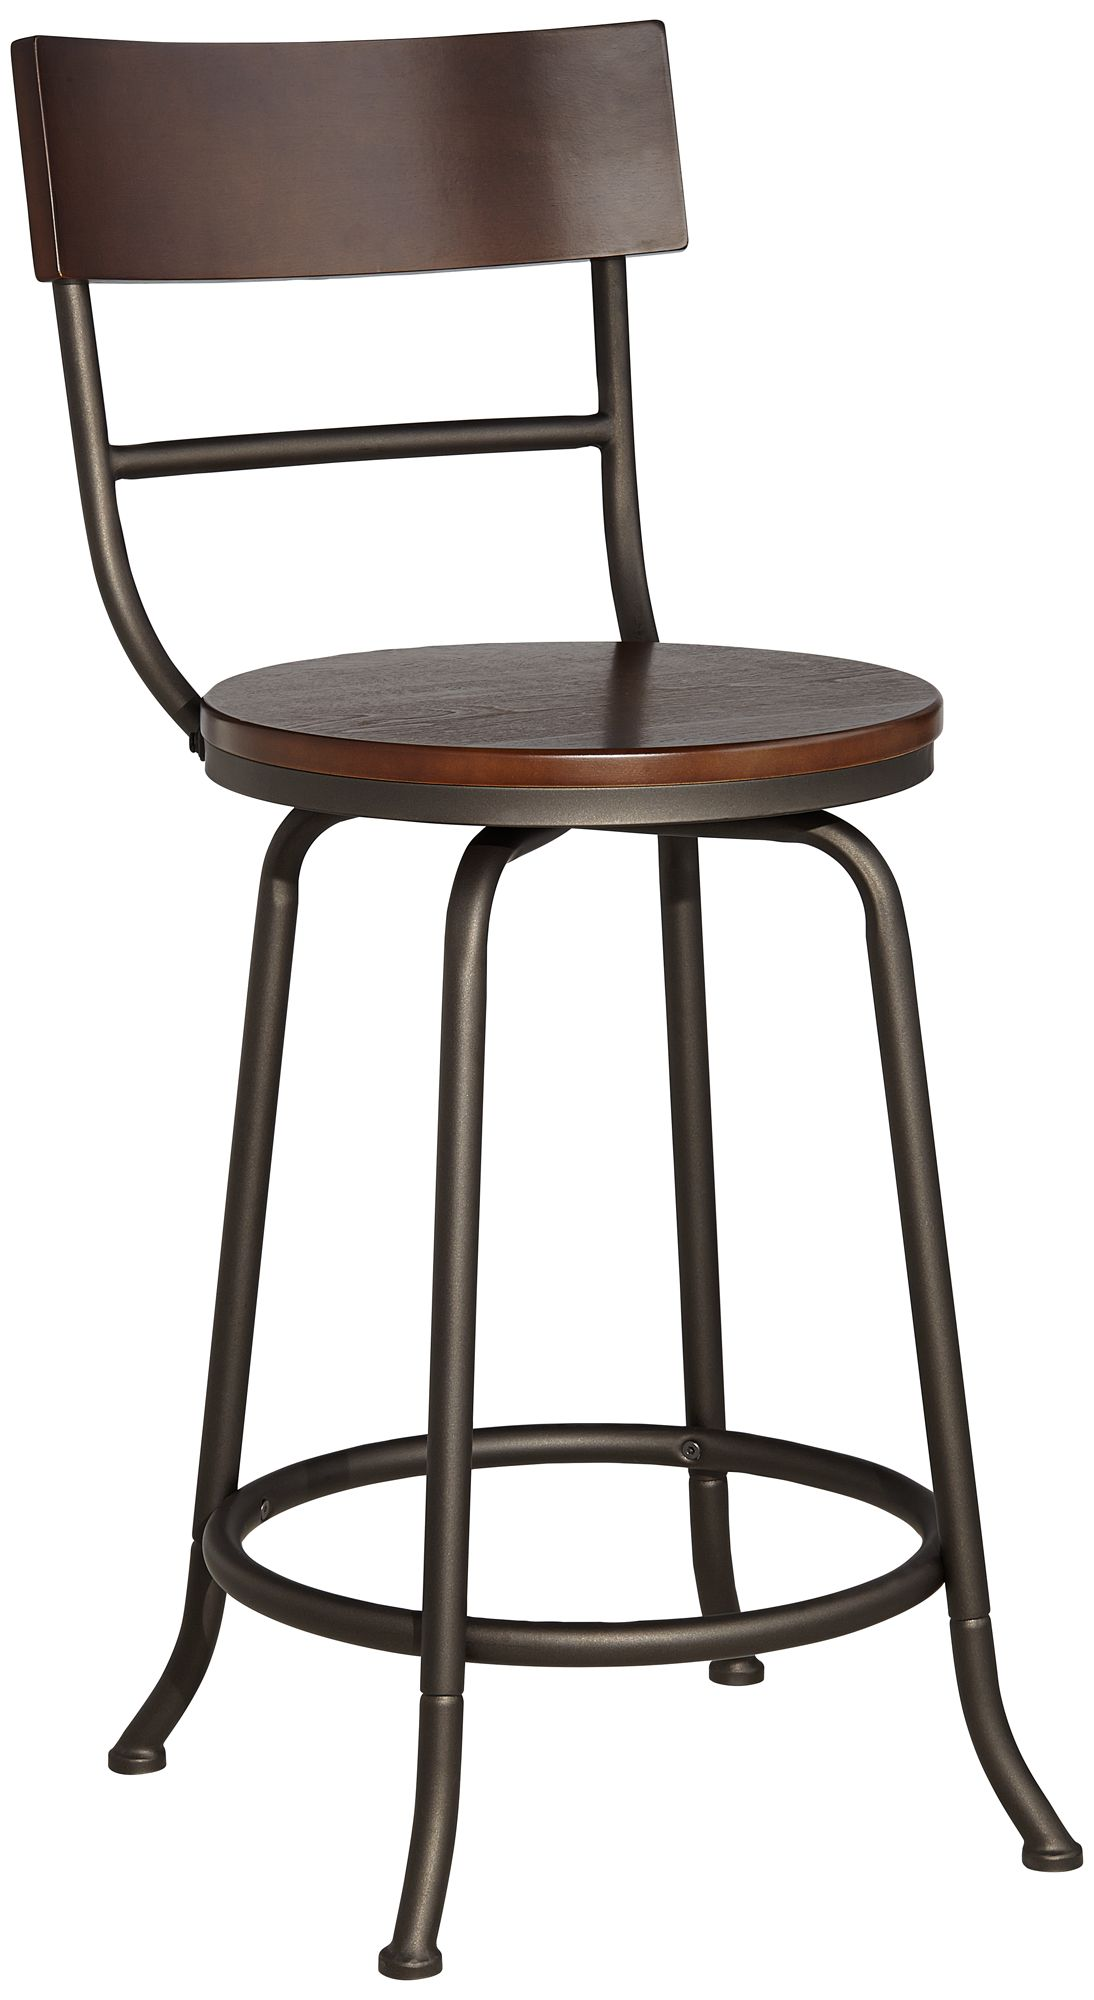 Langdon 24 1/4  Wood and Bronze Metal Counter Stool  sc 1 st  L&s Plus & Langdon 24 1/4